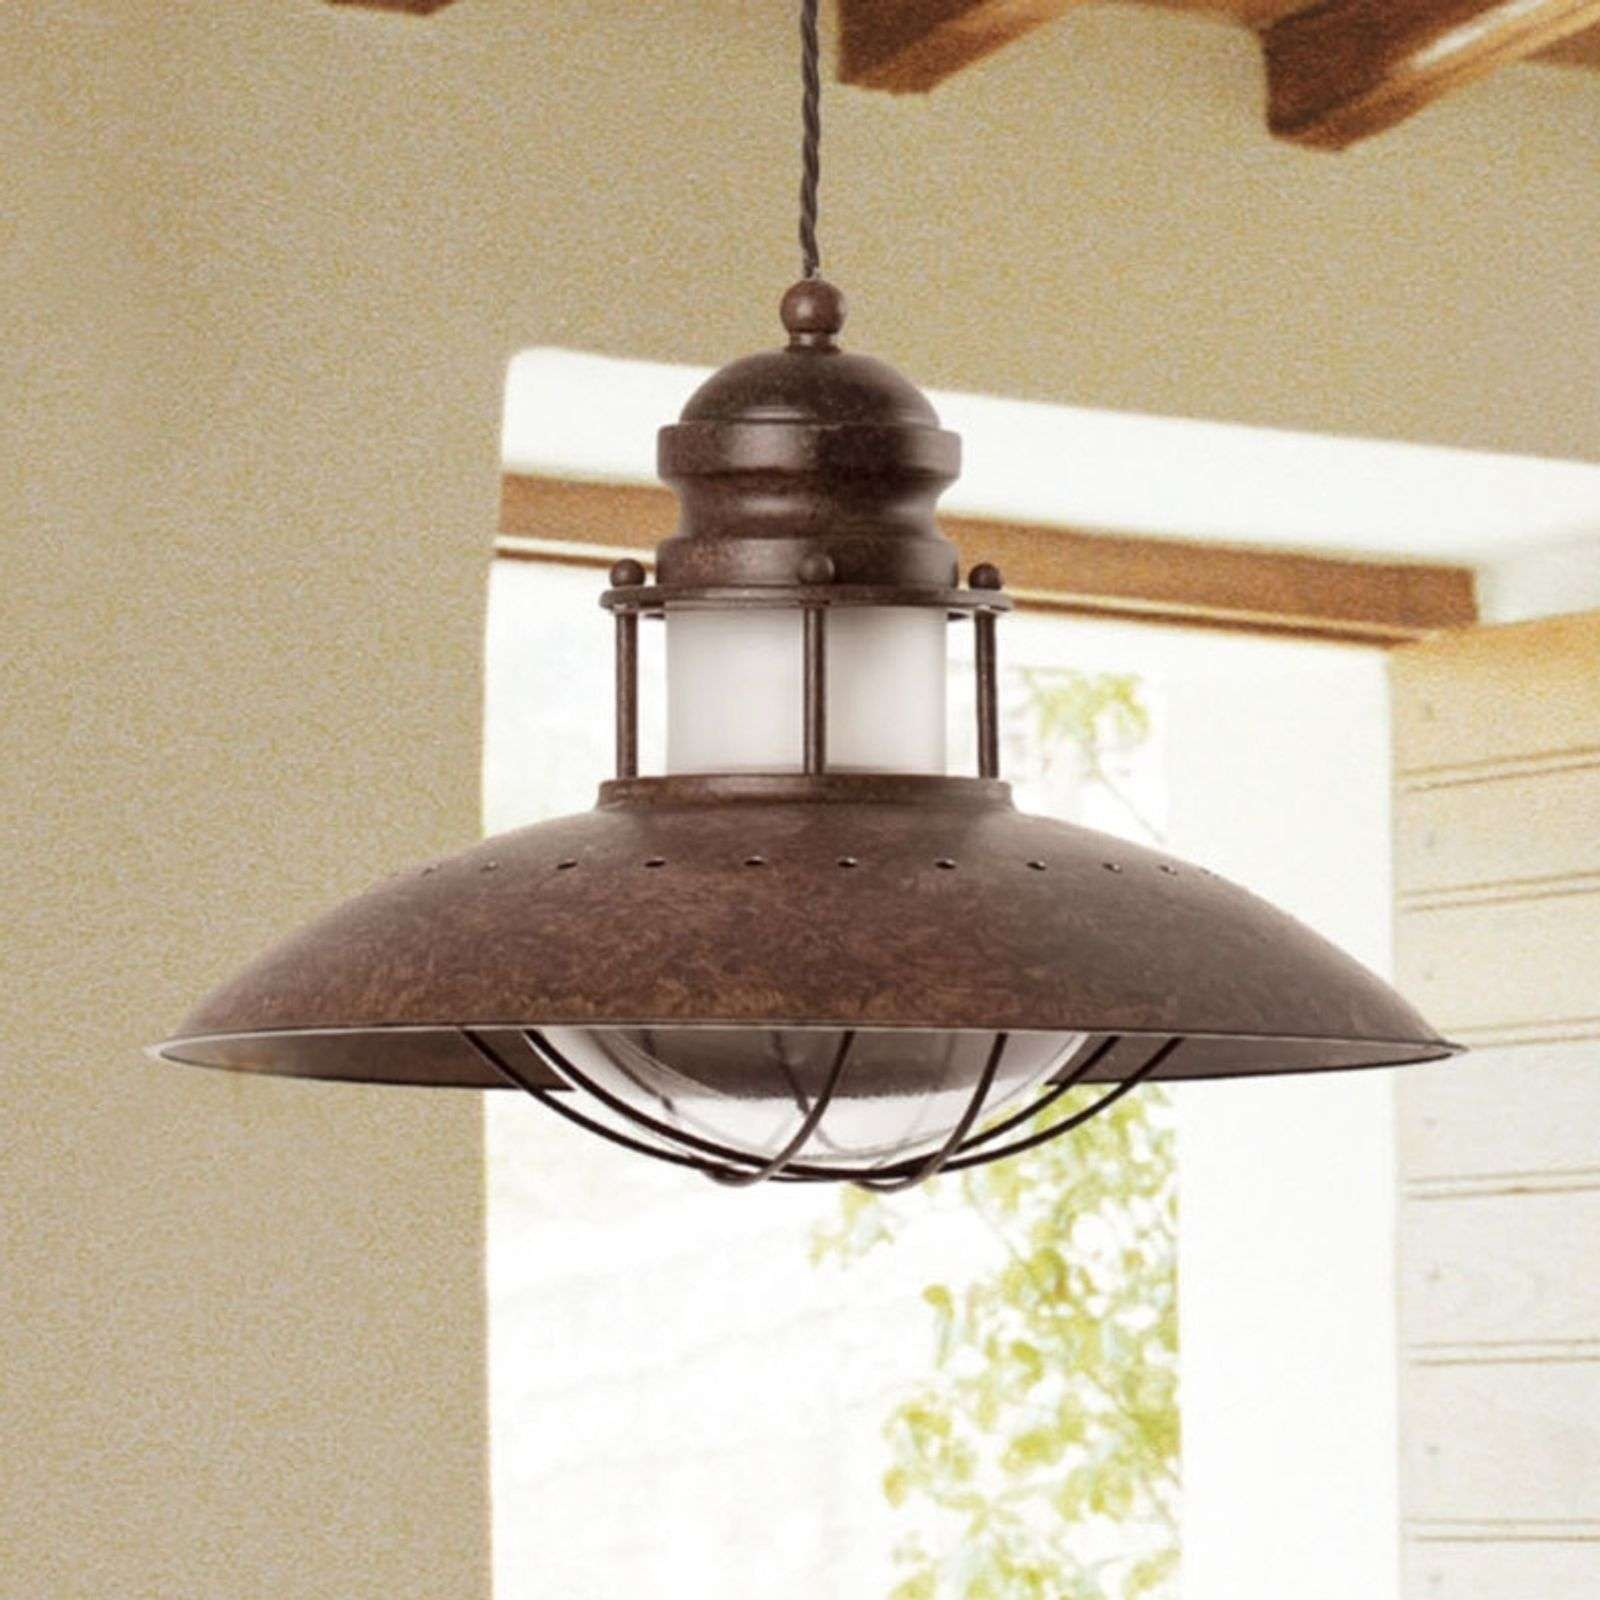 Decorativa lampada sospesa Winch